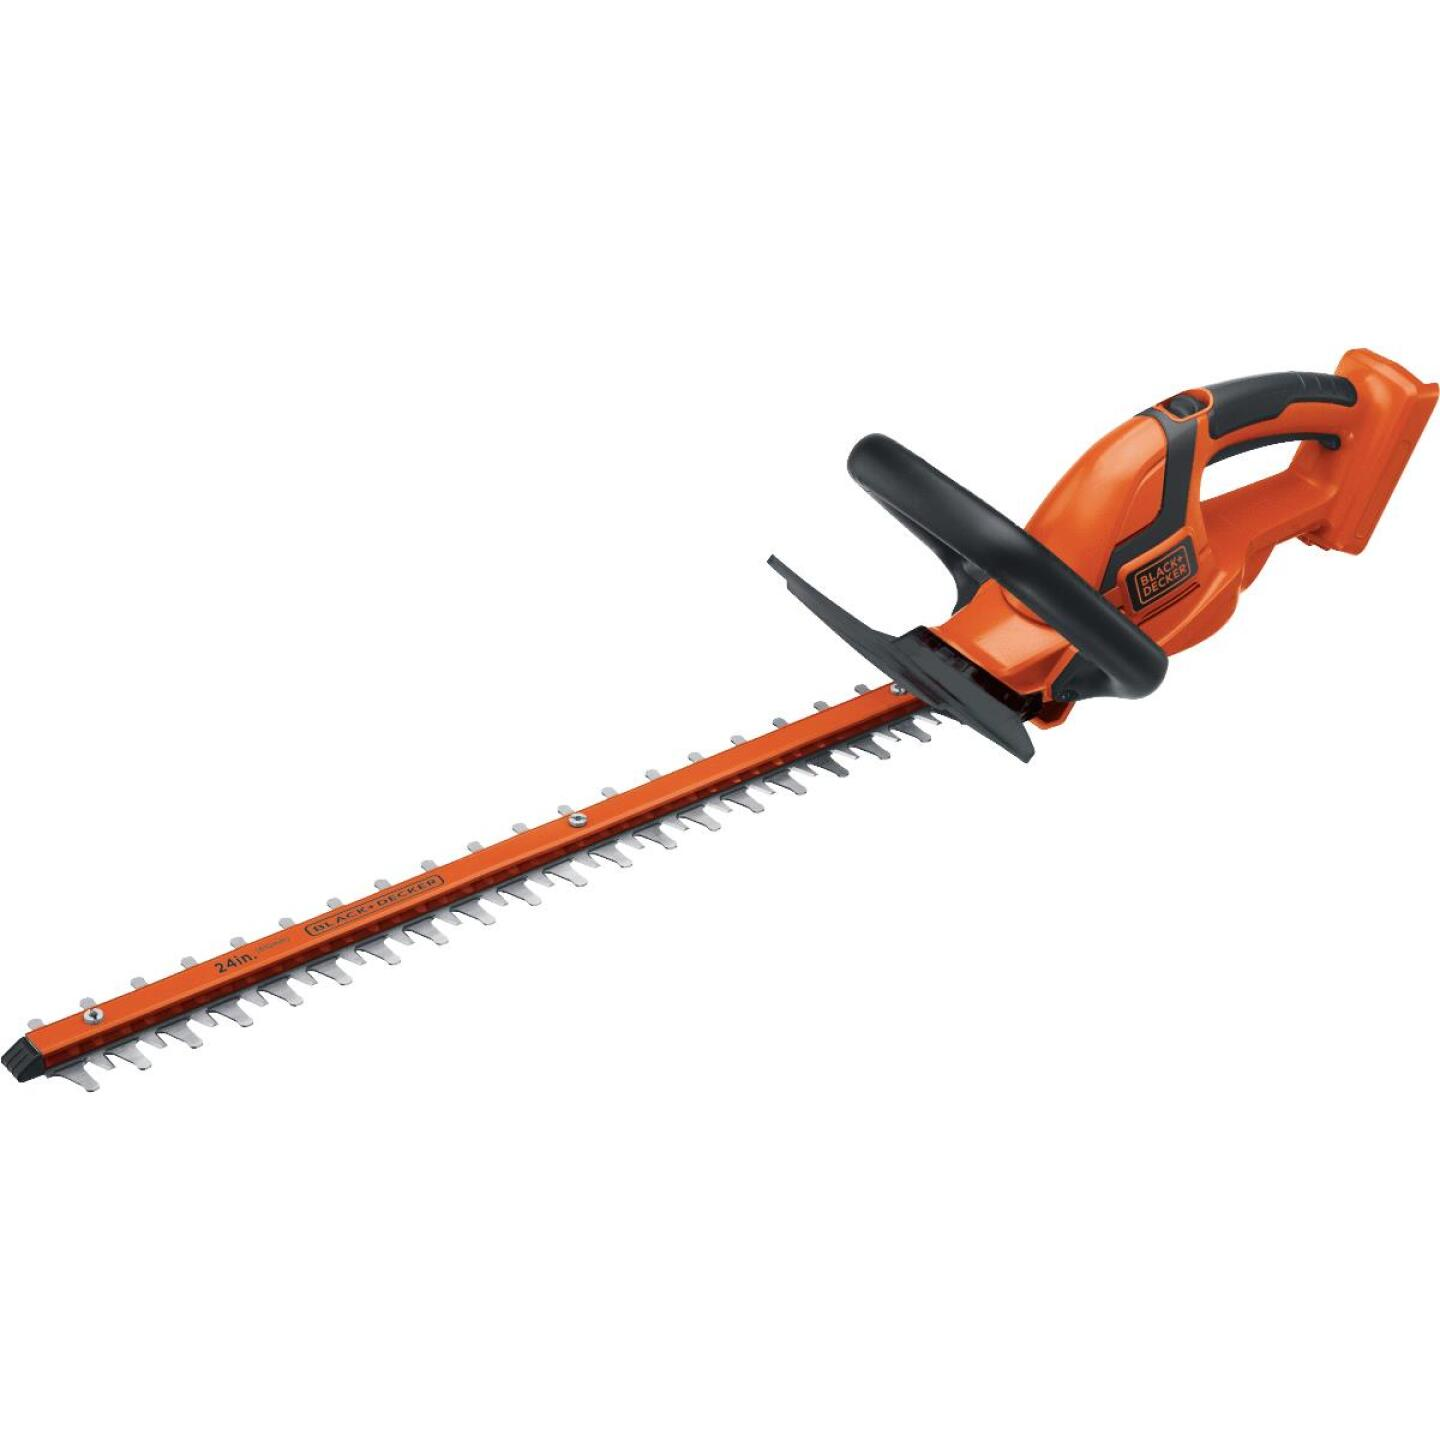 Black & Decker 24 In. 40V Lithium Ion Cordless Hedge Trimmer Image 1